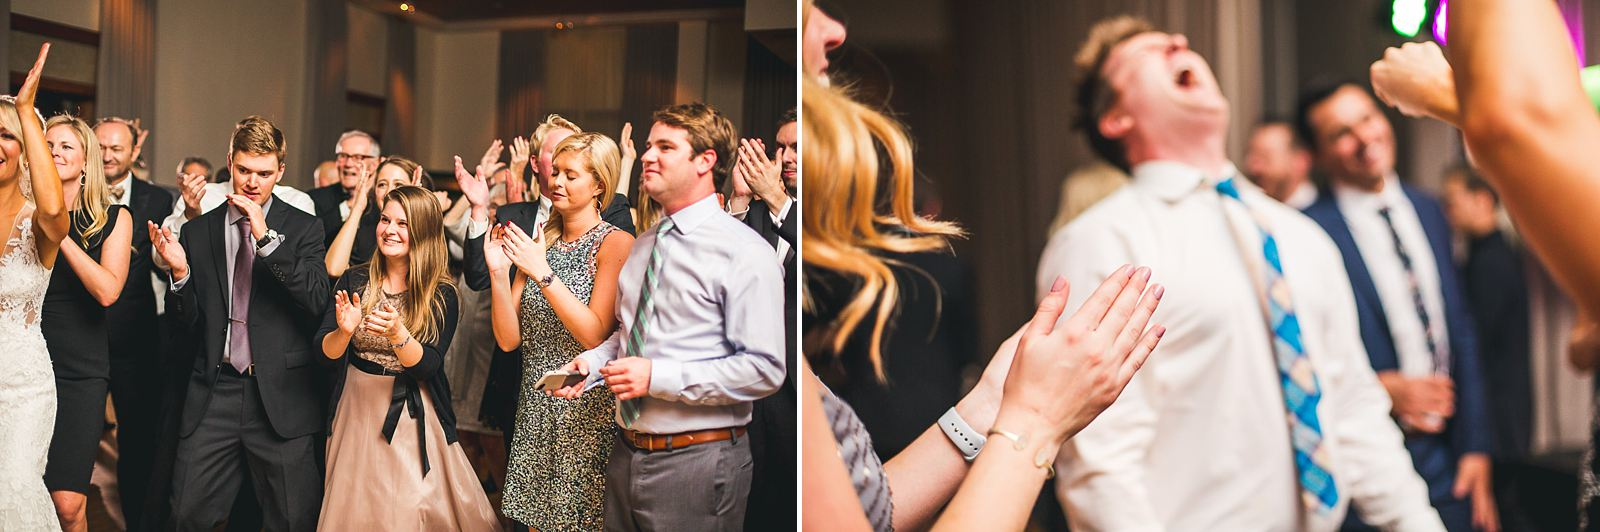 71 ivy room wedding photos - Ivy Room Wedding // Audrey + Tyler